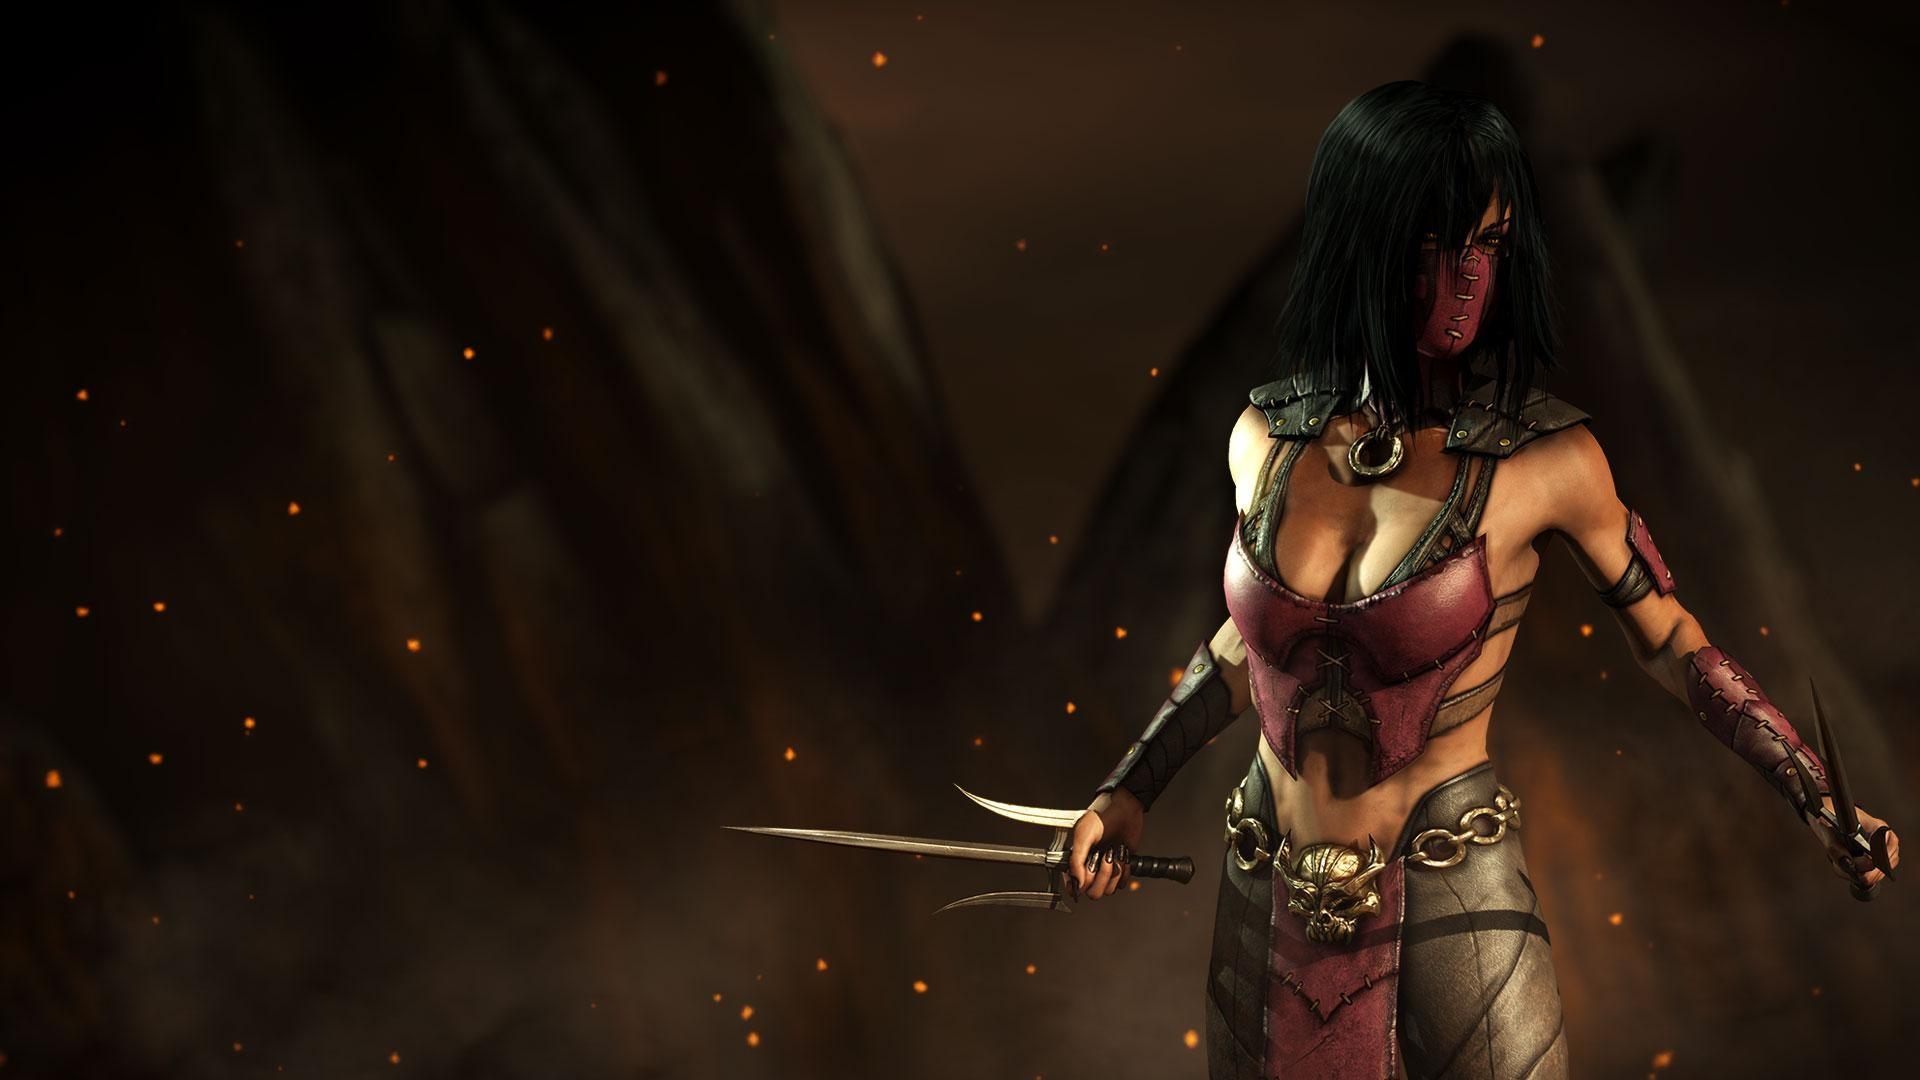 1920x1080 Mortal Kombat X - Johnny Cage and Mileena renders / Character bios - NeoGAF